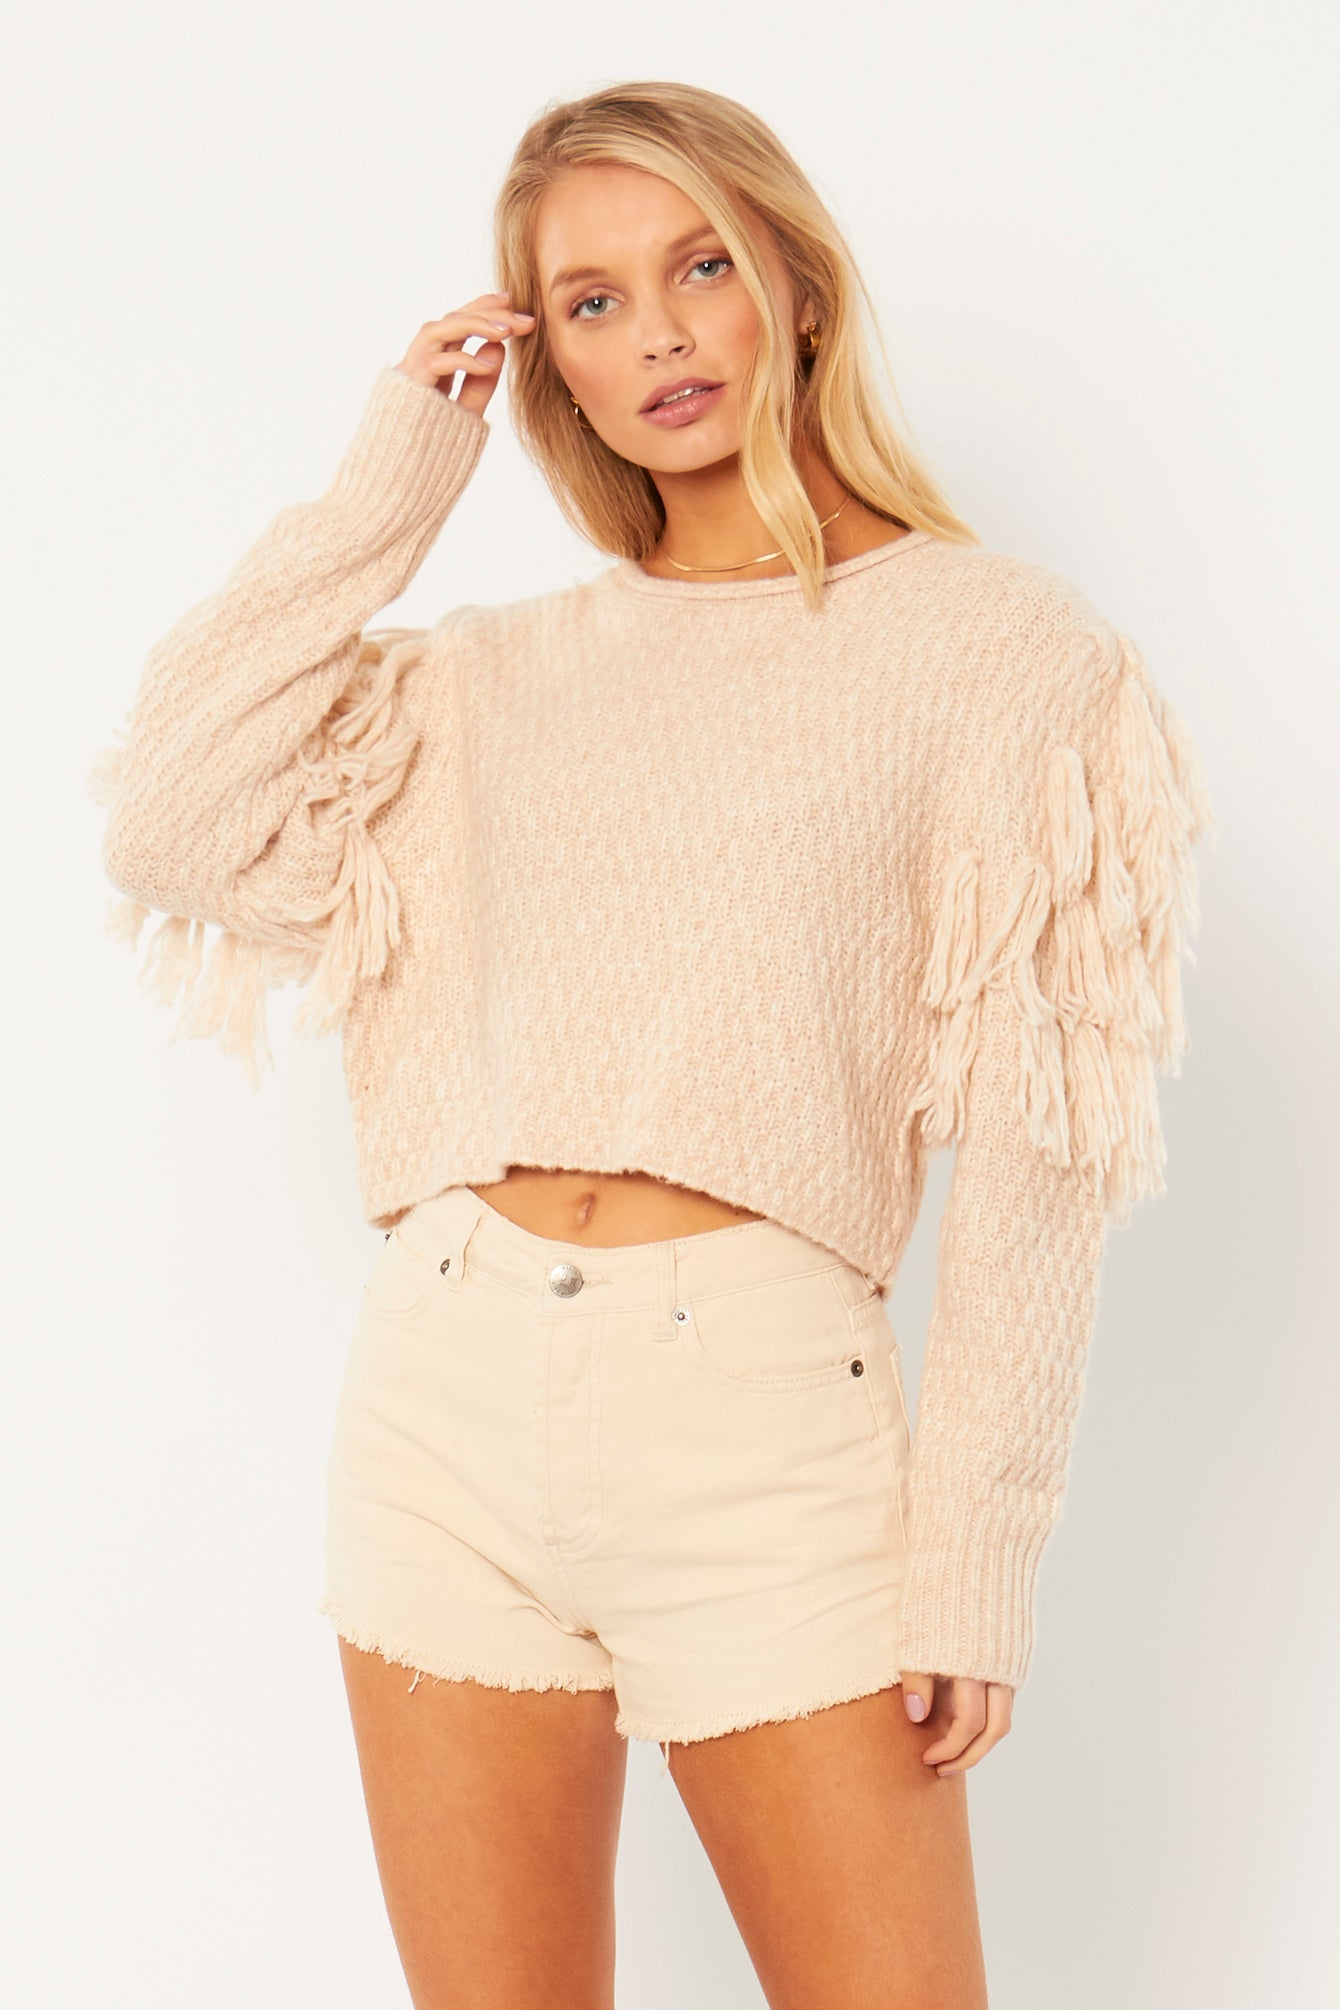 Rocha Long Sleeve Knit Sweater in Oatmeal